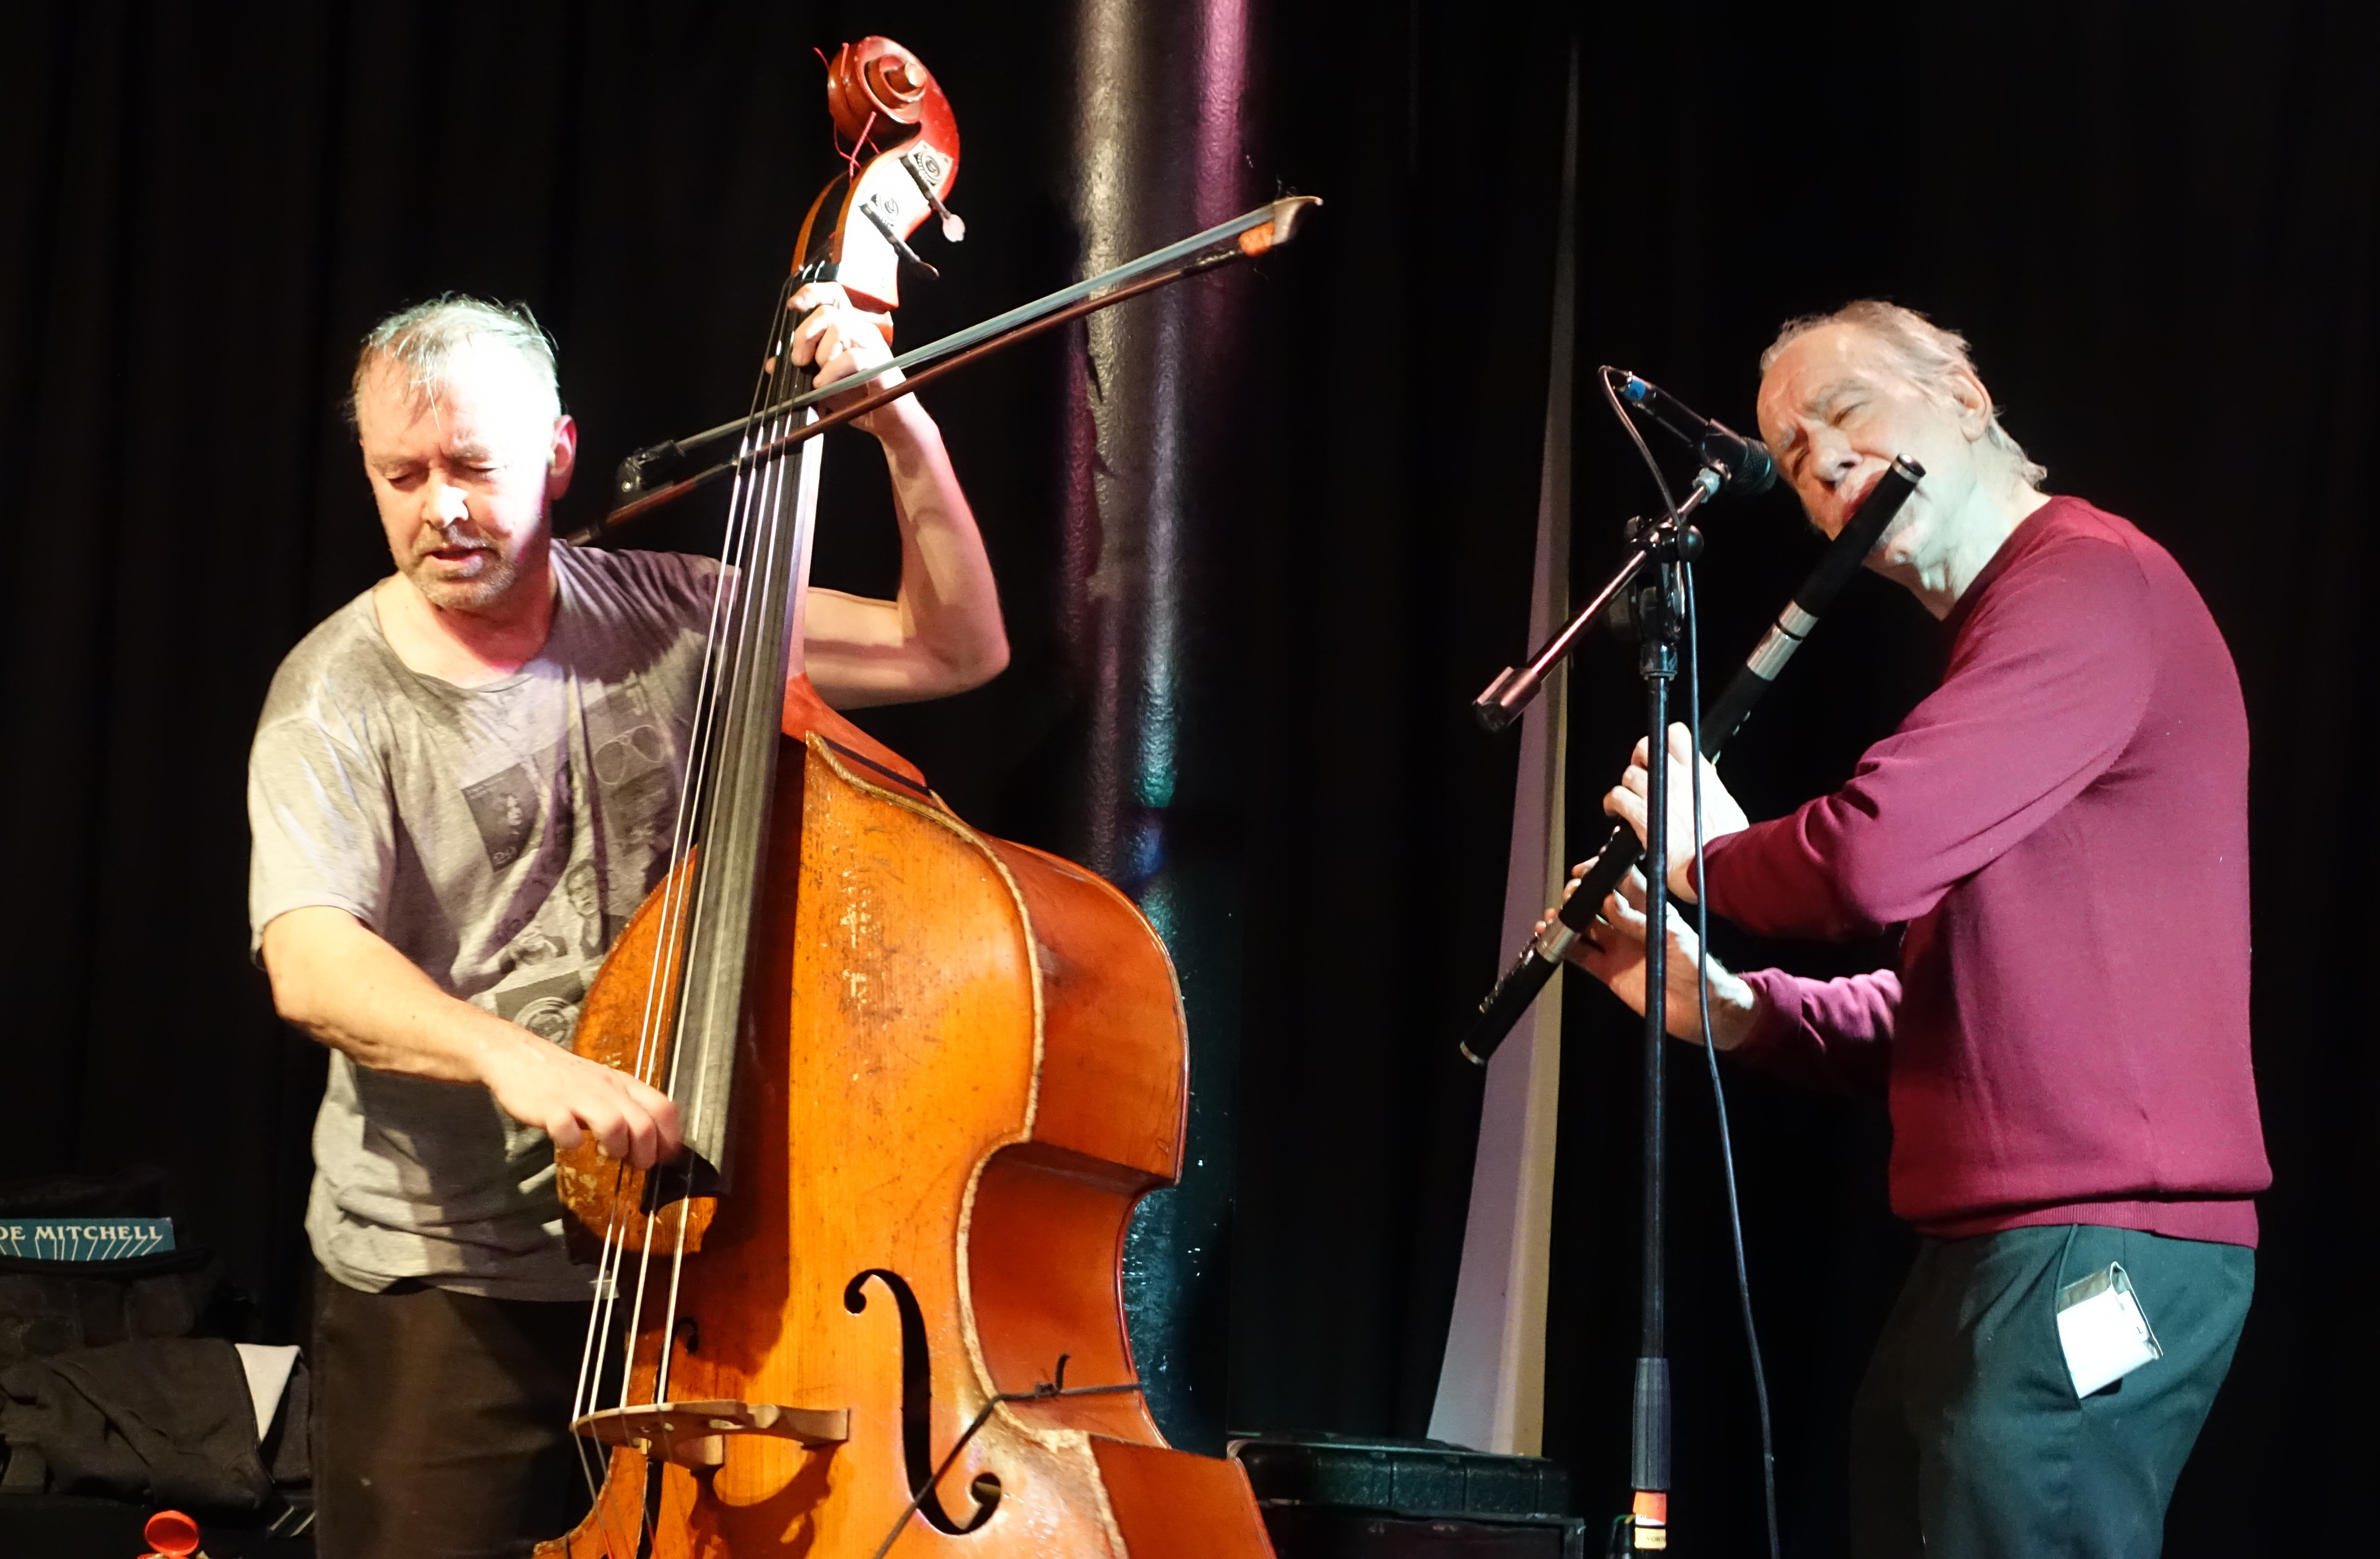 Neil Metcalfe and John Edwards at the Vortex, London in November 2017